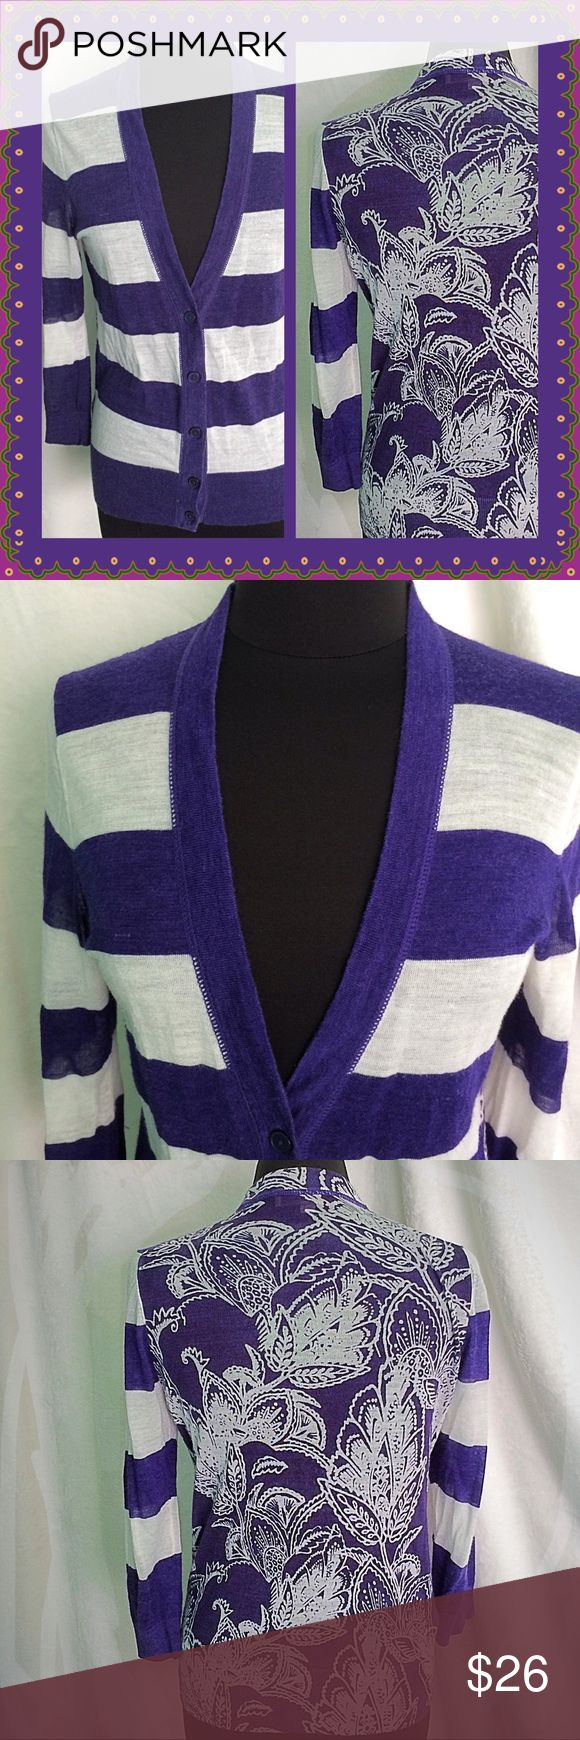 """Ann Taylor Loft / Large / Unique Purple Cardigan Ann Taylor Loft  Size Large   Unique Purple Cardigan  Striped front & Sleeves  Floral Back  45% ramie 55% cotton  Approx Measurements:  Bust 40""""  Length 27"""".  Please feel free to make an offer - Enjoy BIG discounts on bundles & save $$$ on shipping! I package safely & ship fast.  TY & Happy Poshing! 💜💜💜  E9 LOFT Sweaters Cardigans"""